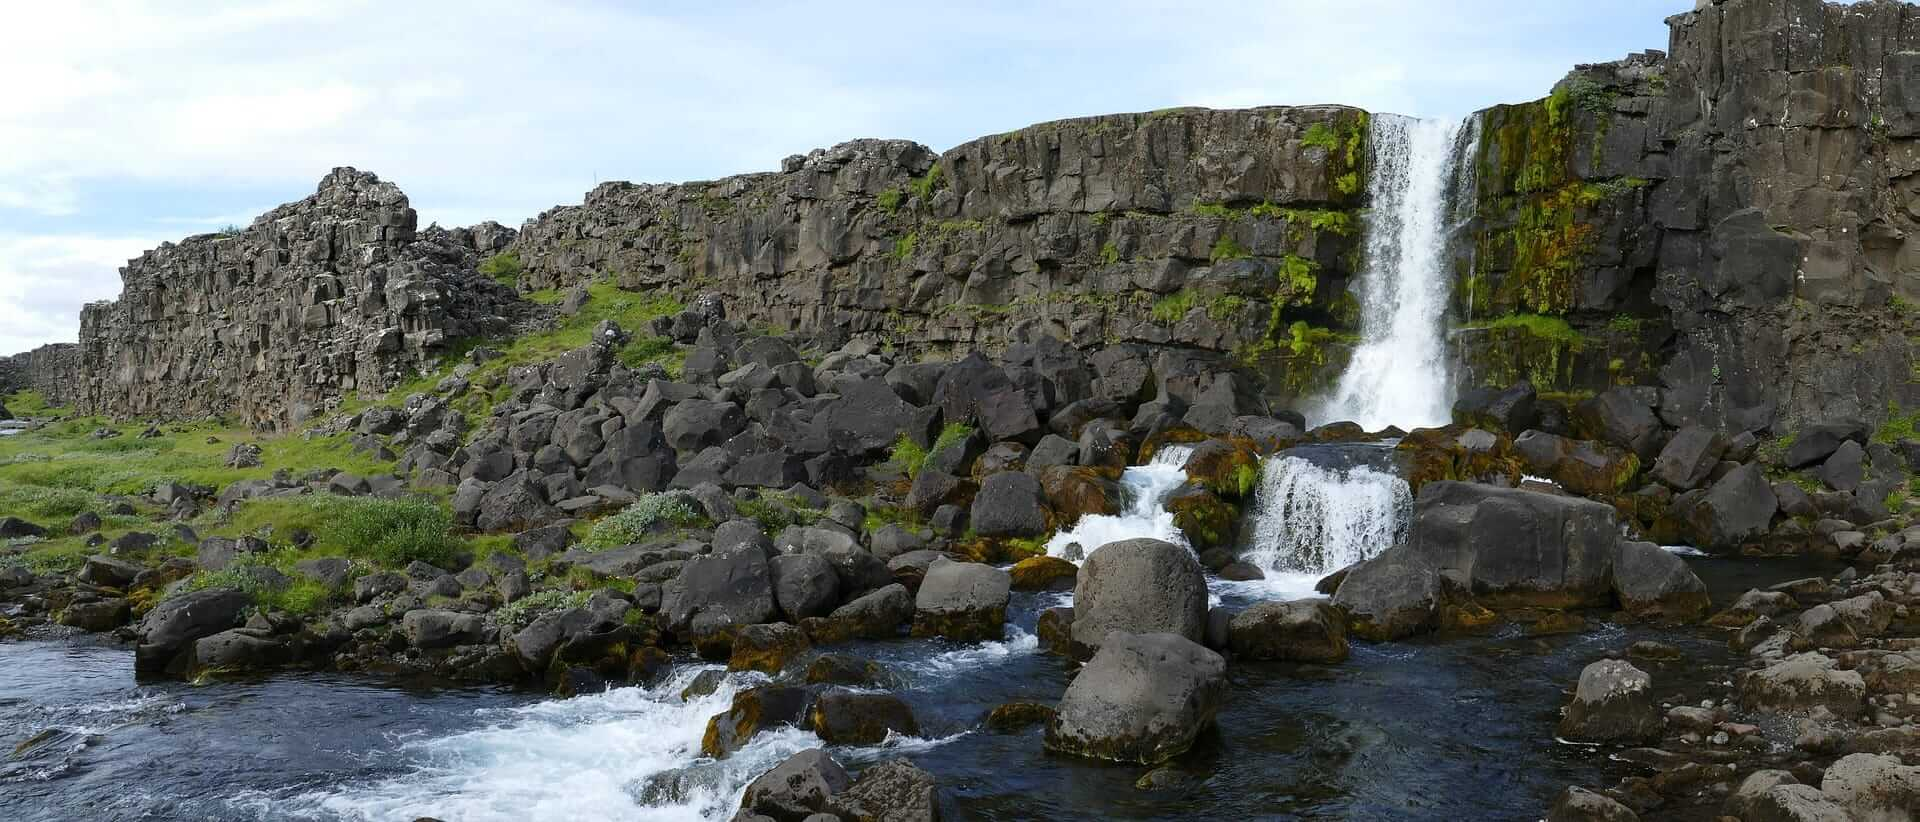 Game of Thrones Locations - Thingvellir, Iceland